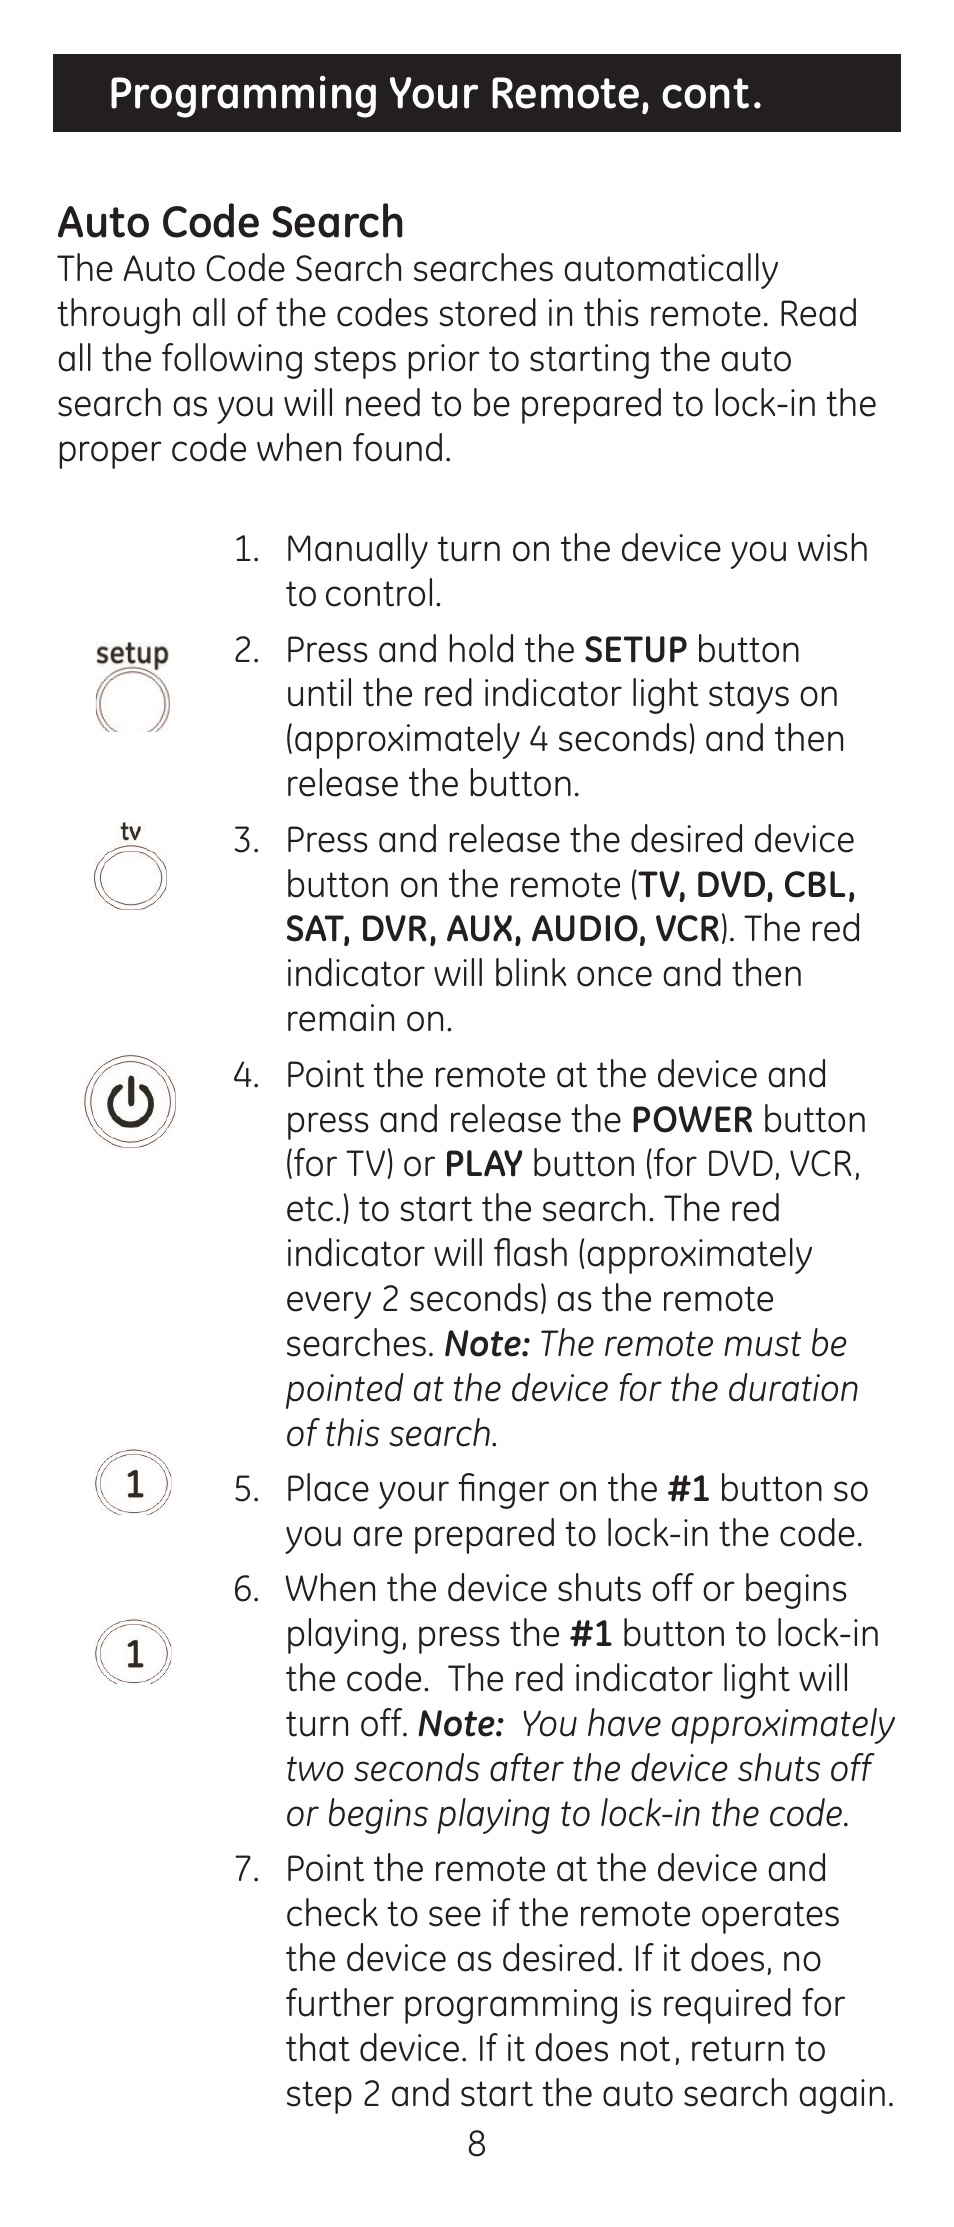 Programming your remote, cont. auto code search   GE 24927-v2 GE Universal  Remote User Manual   Page 8 / 42